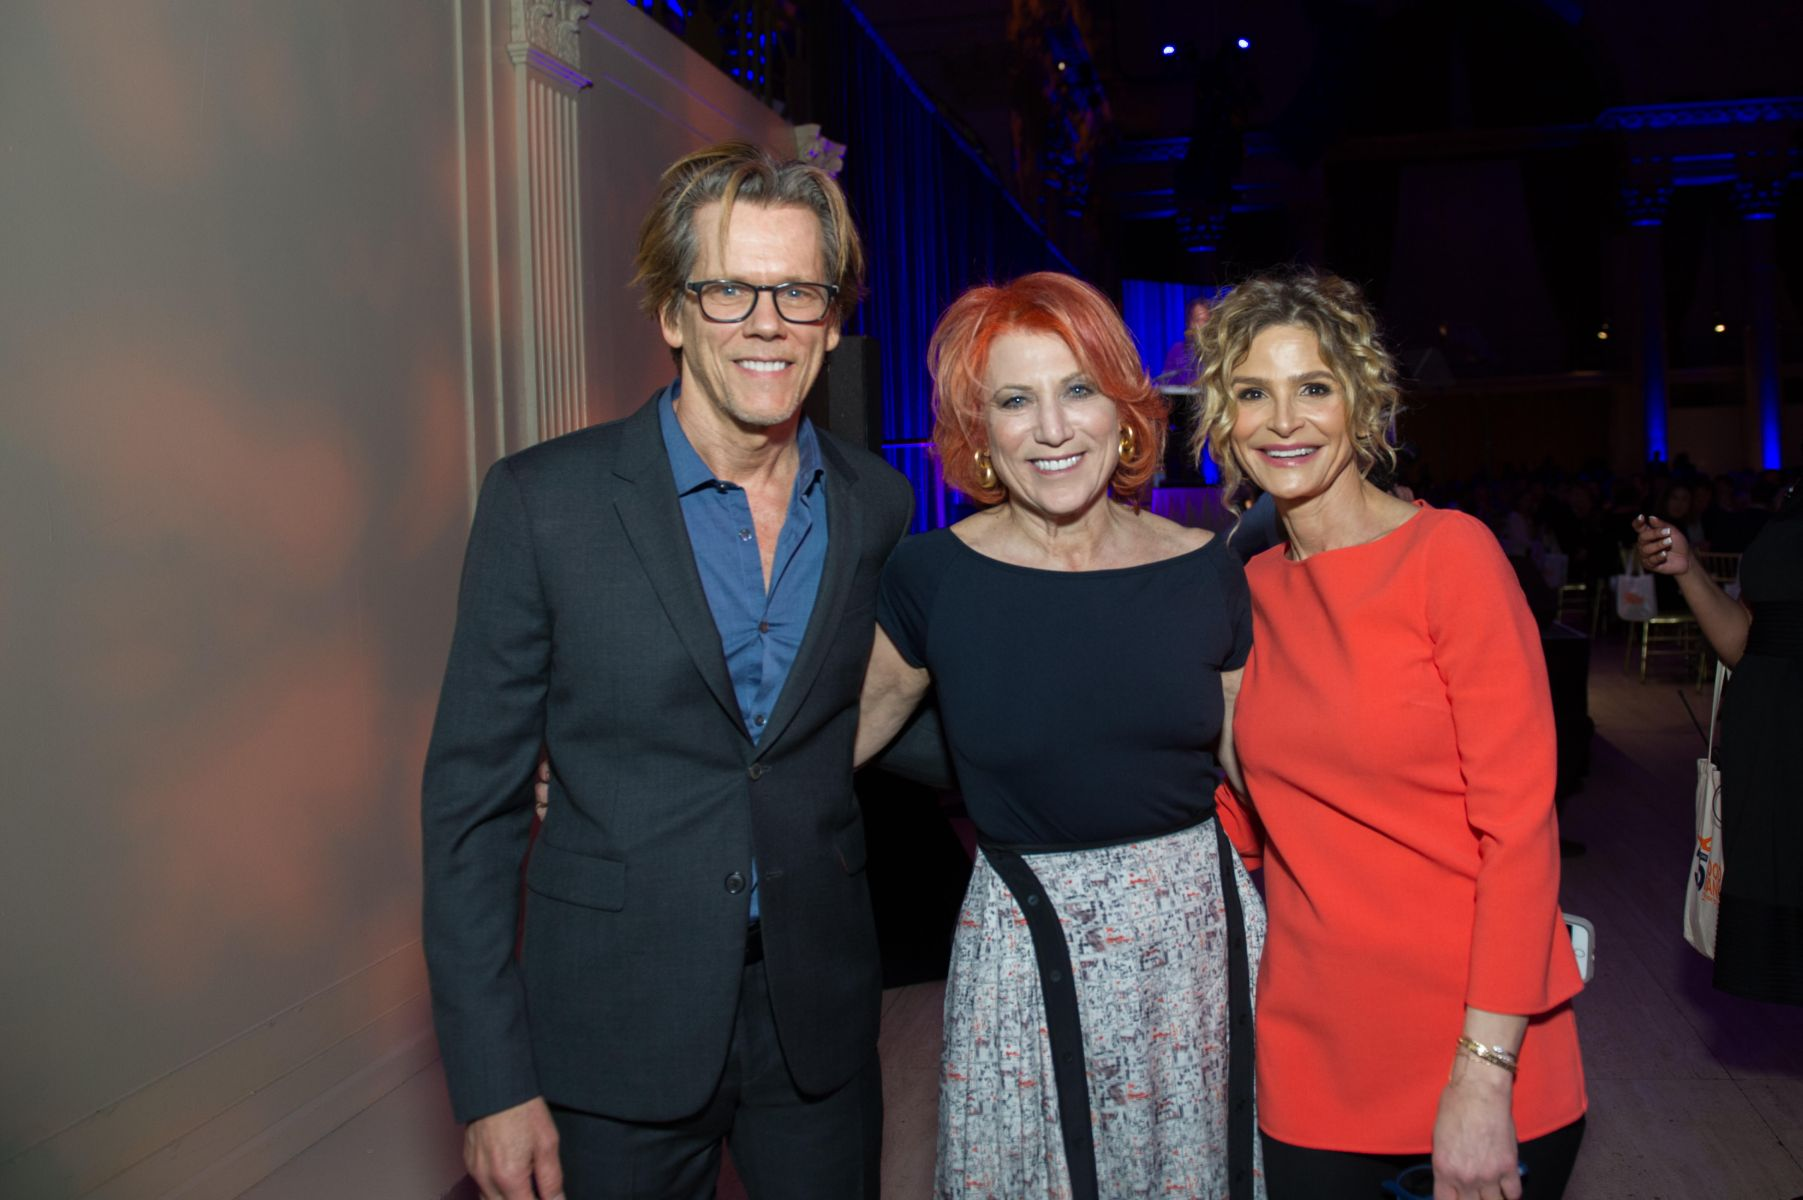 Famous actors Kevin Bacon and Kyra Sedgwick with event planner Marcy Blum at an event.